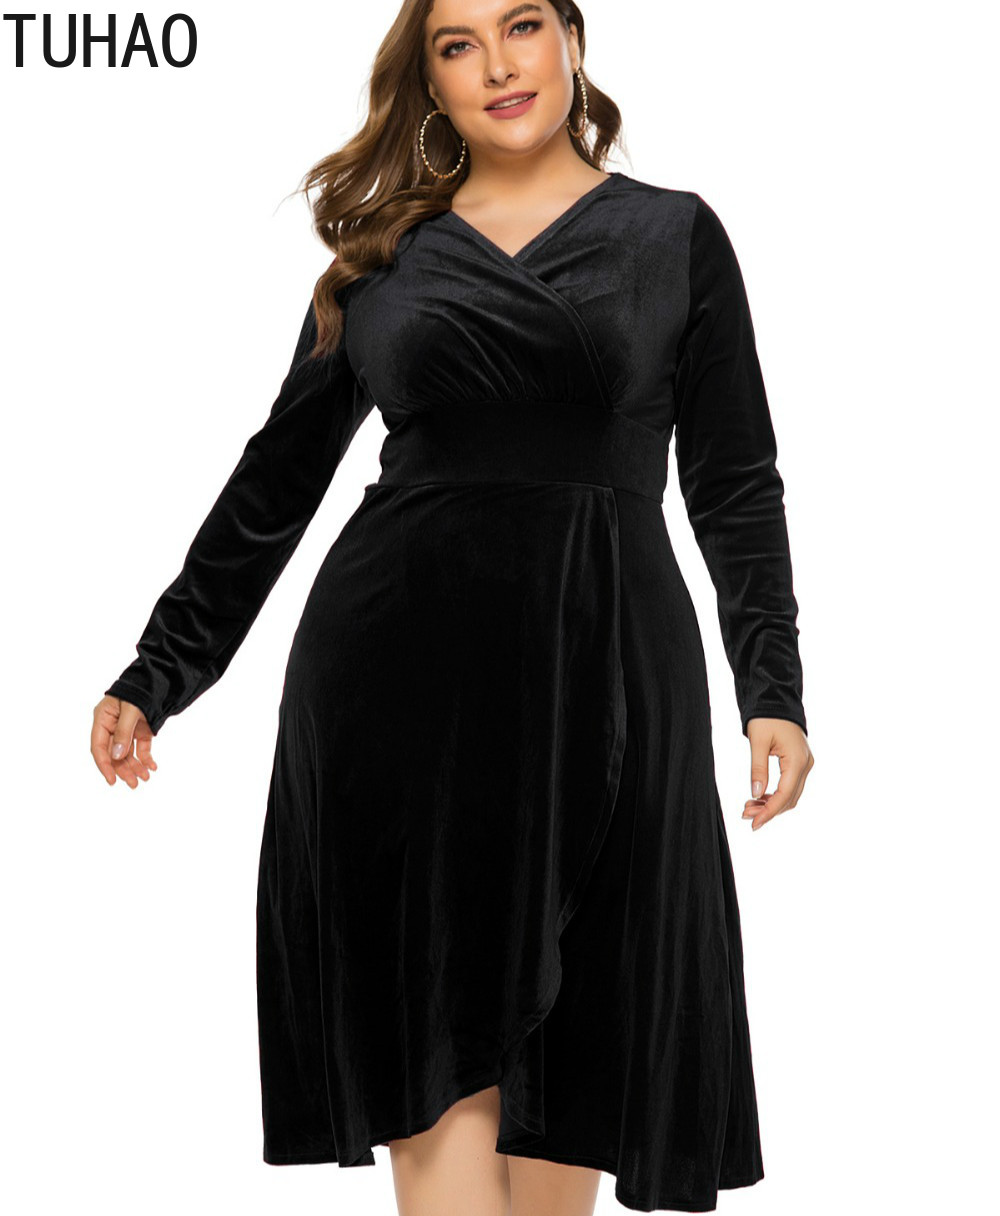 TUHAO 2020 Spring Women Elegant Velvet Dresses Middle Age Female Night Club Party Dress Plus Size 5XL 4XL 3XL Clothing Woman WM5 image